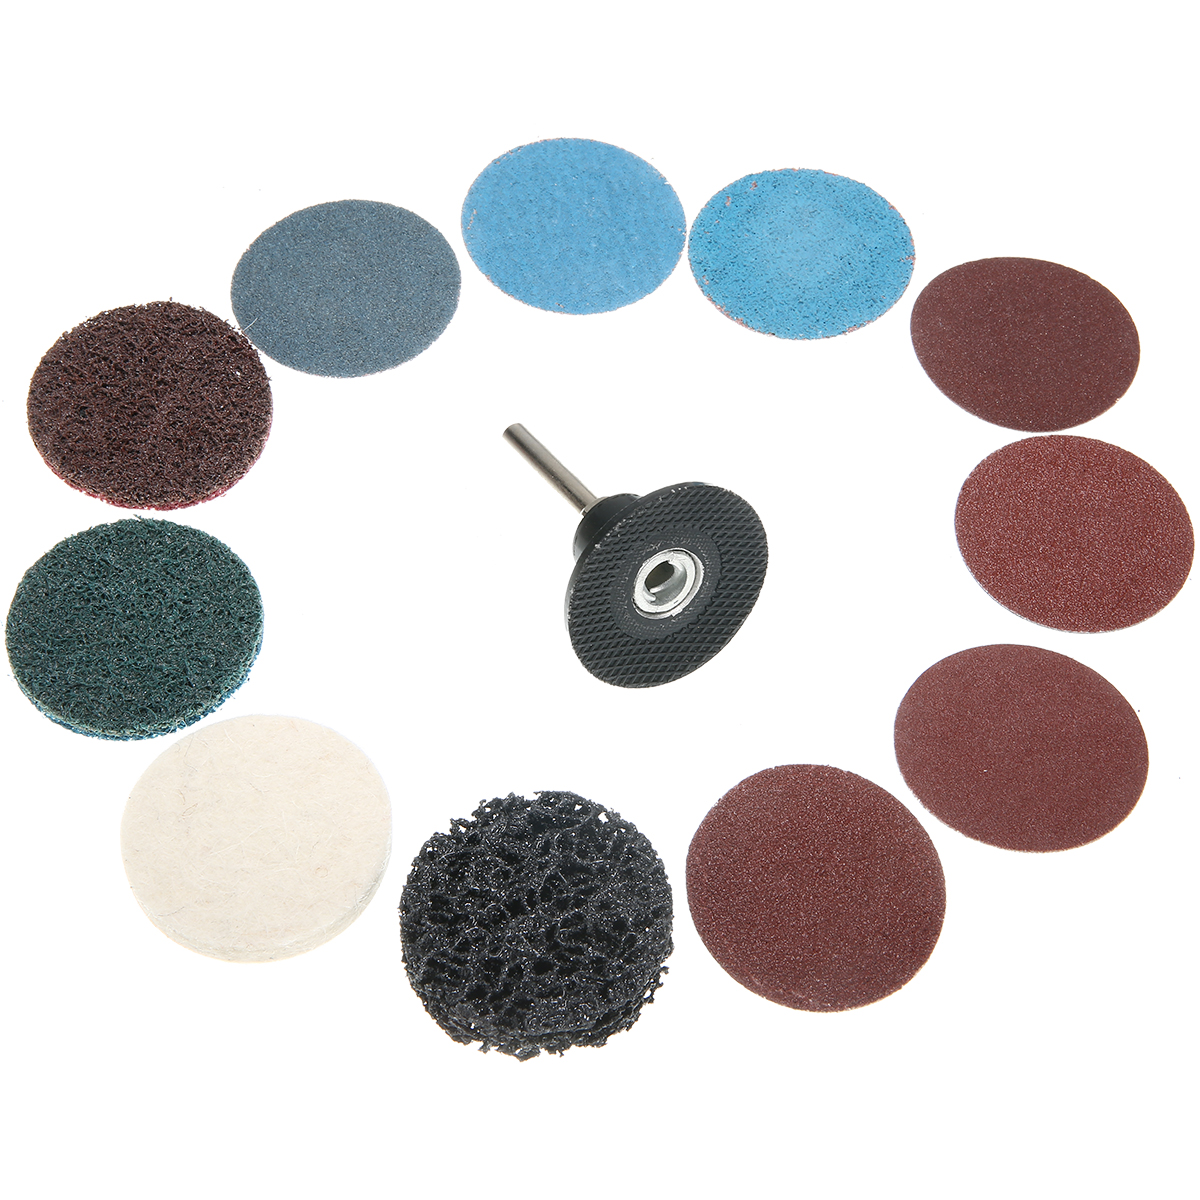 Pad Sandpaper Sanding-Discs Polishing Rotary-Tools Roloc Roll-Lock-Surface 50mm 60pcs